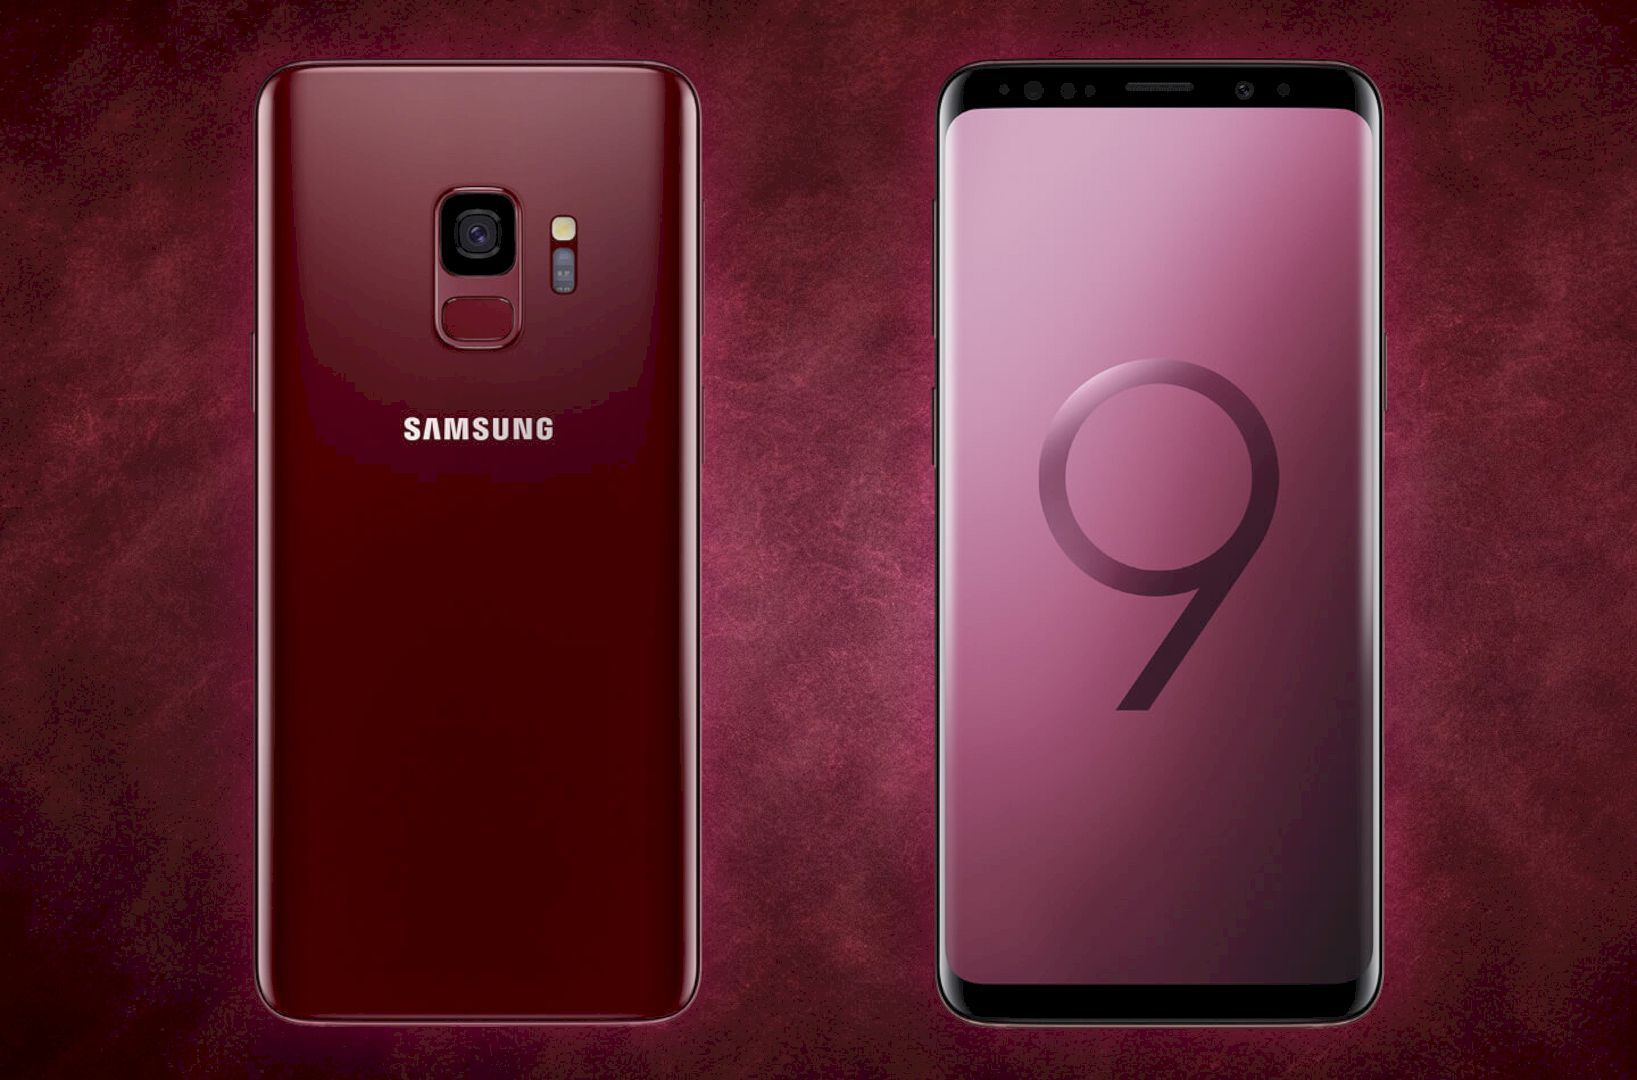 Samsung Galaxy S9 And S9 Vibrant Colors Sunrise Gold And Burgundy Red Editions Samsung Samsung Galaxy Samsung Galaxy S9